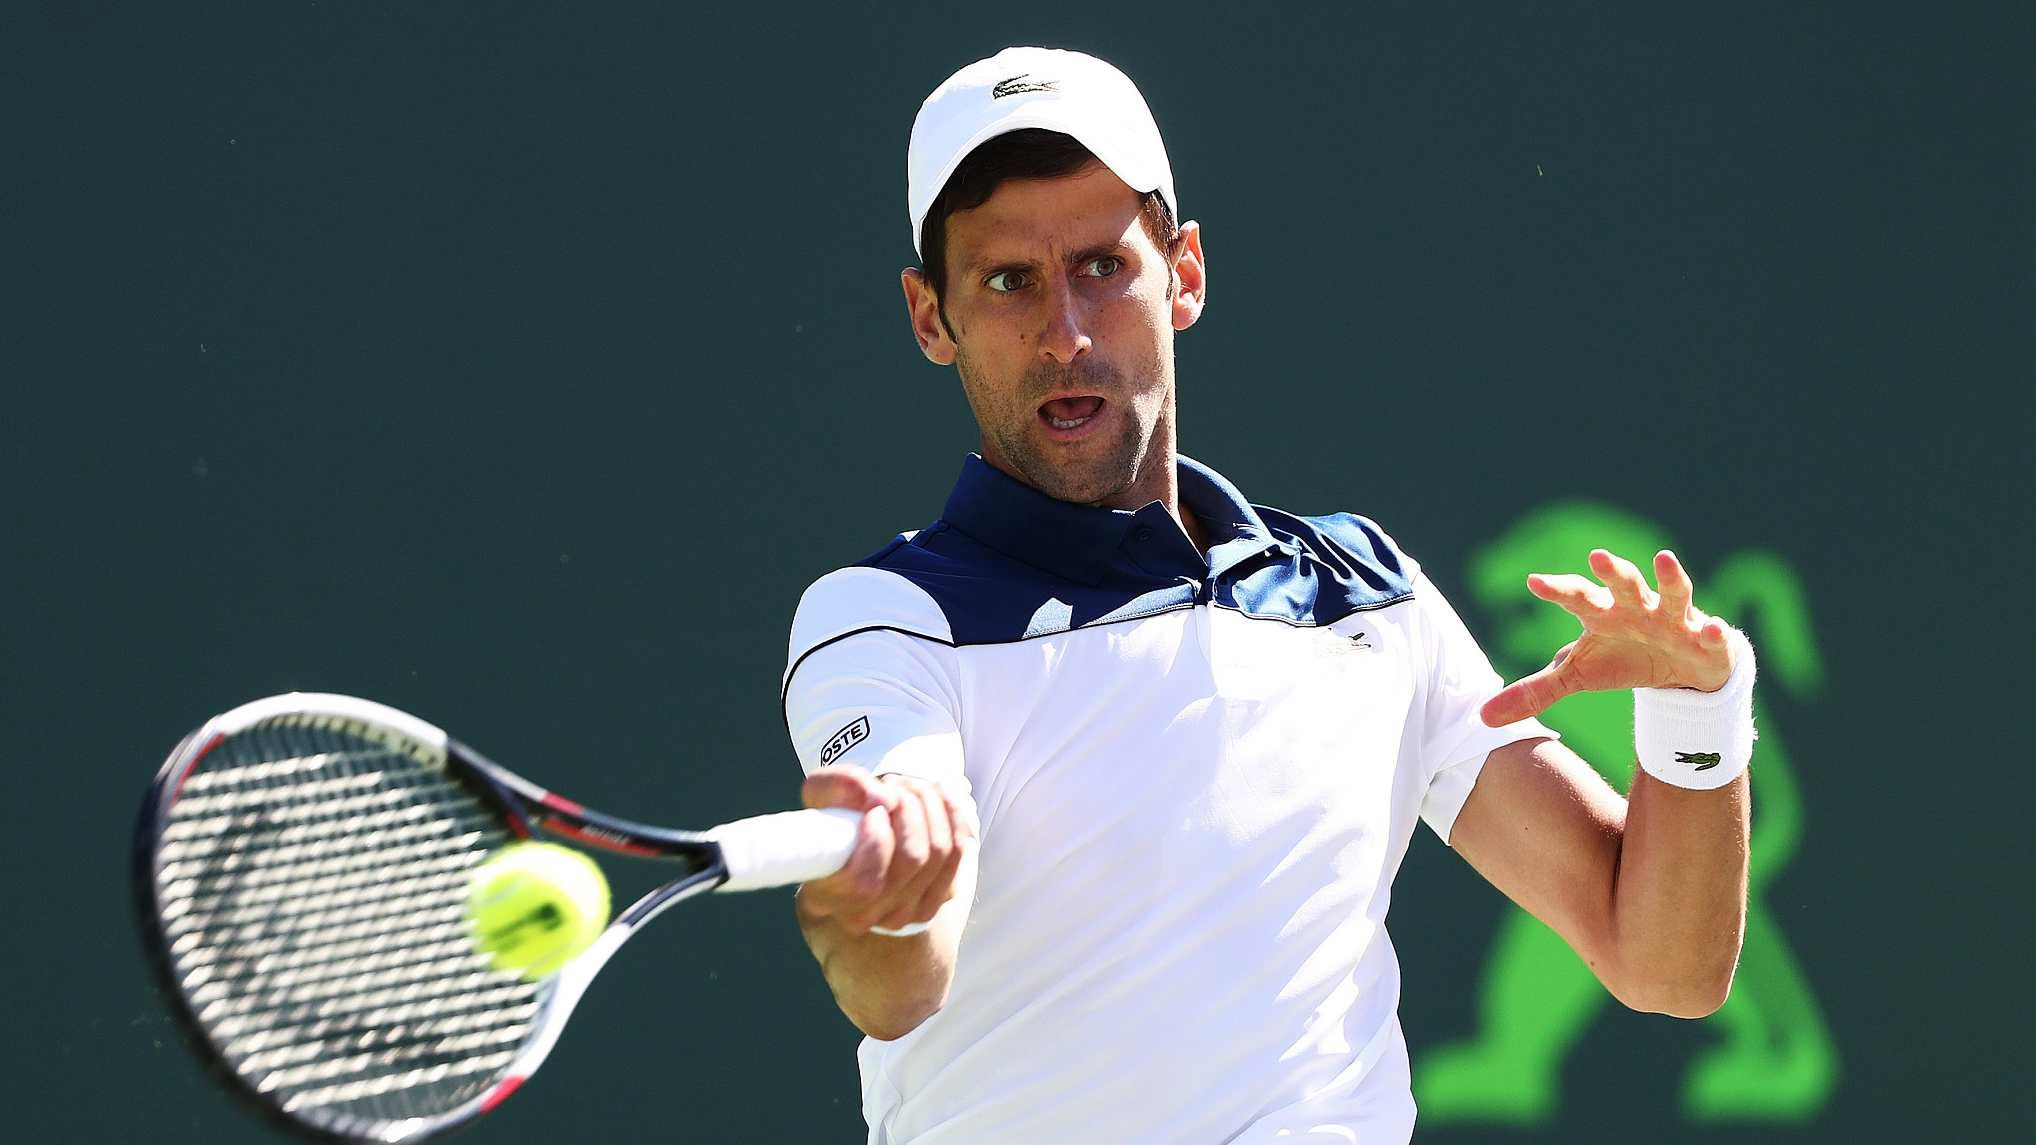 Djokovic says he will play at US Open